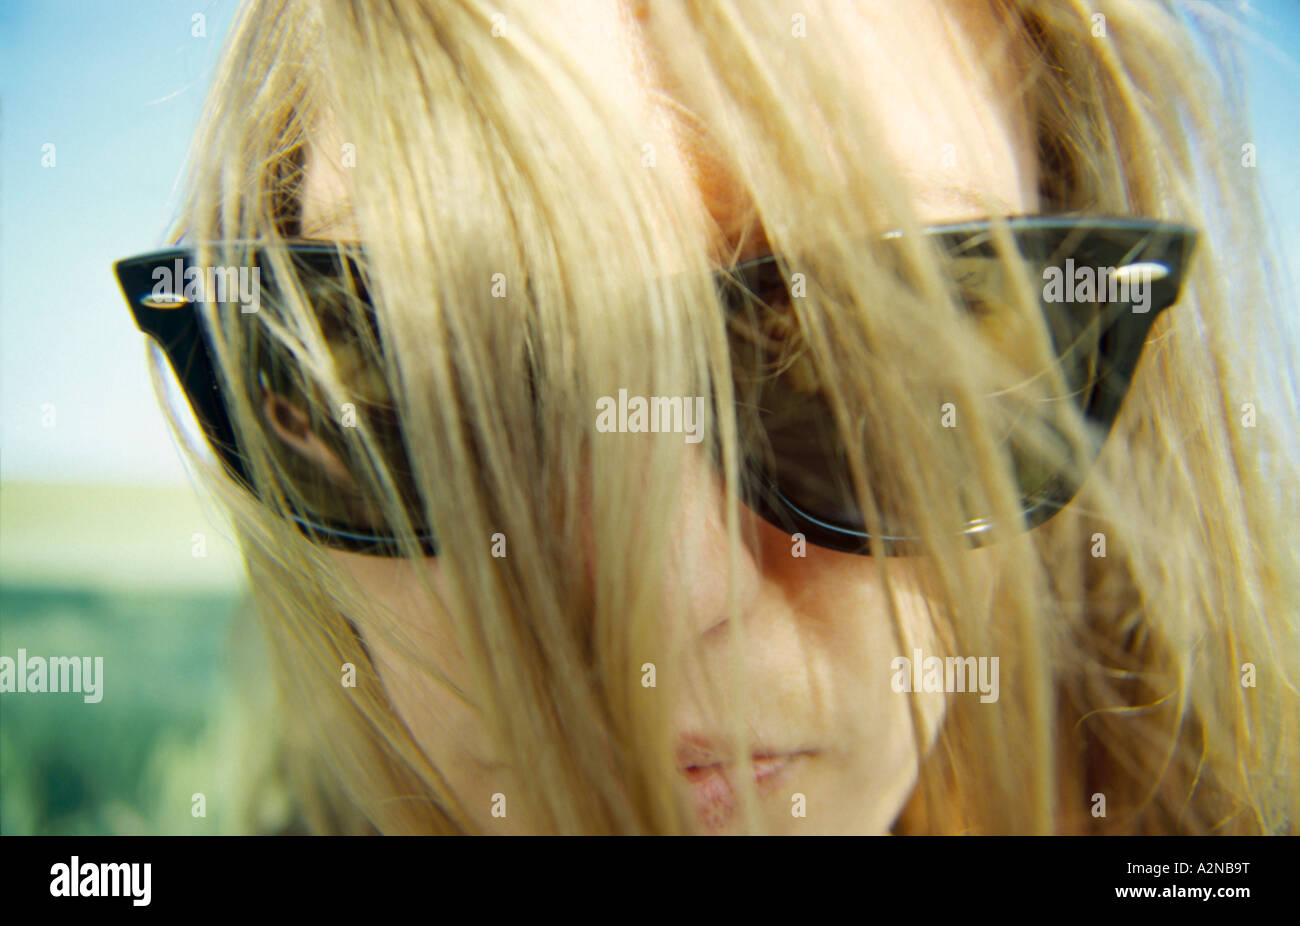 Close-up of woman with tousled hair wearing sunglasses - Stock Image